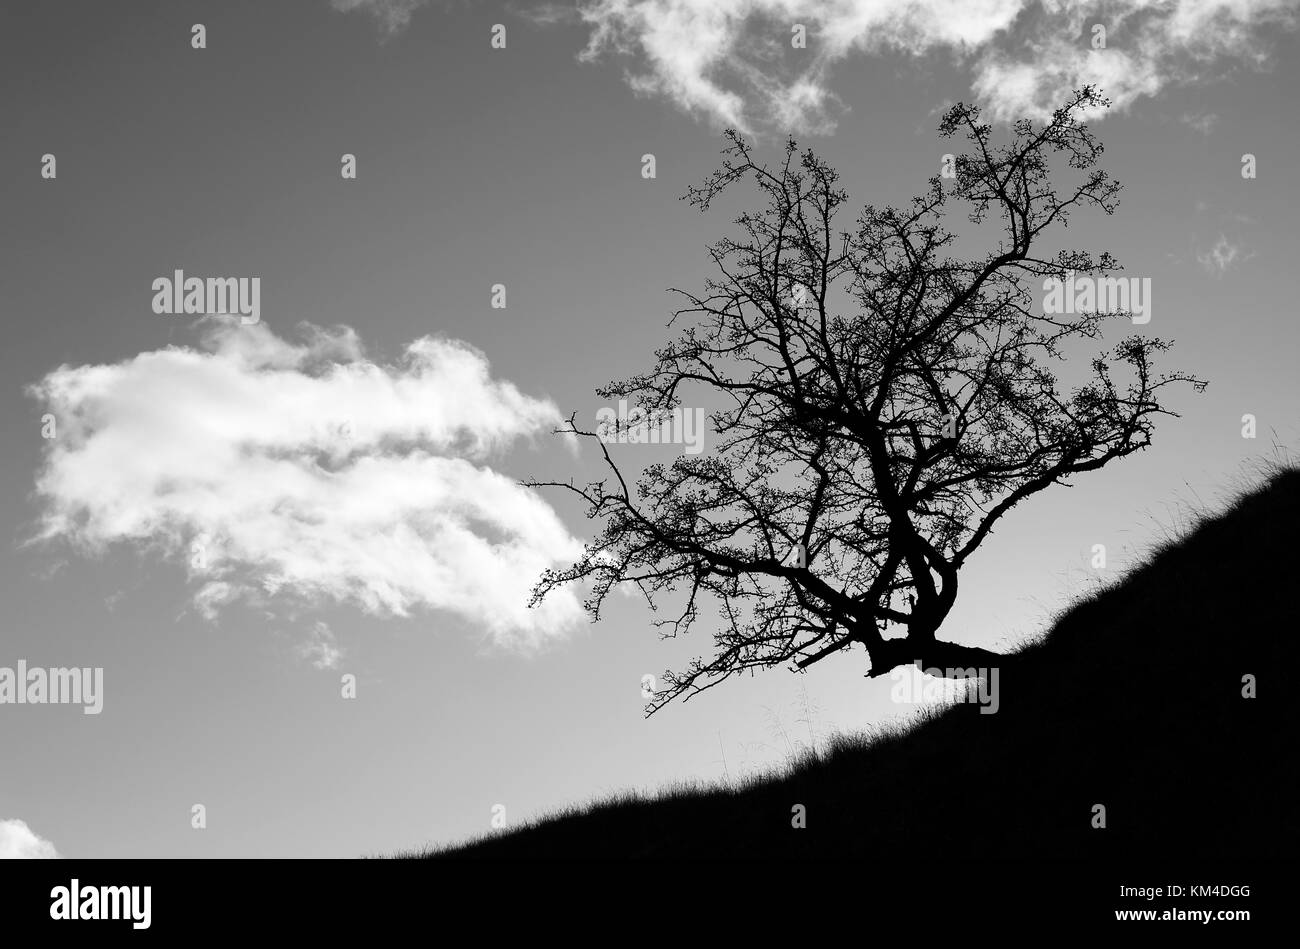 Hawthorn tree, Crataegus monogyna, on a hillside creating a dramatic silhouette, the initial effect is due to camera - Stock Image